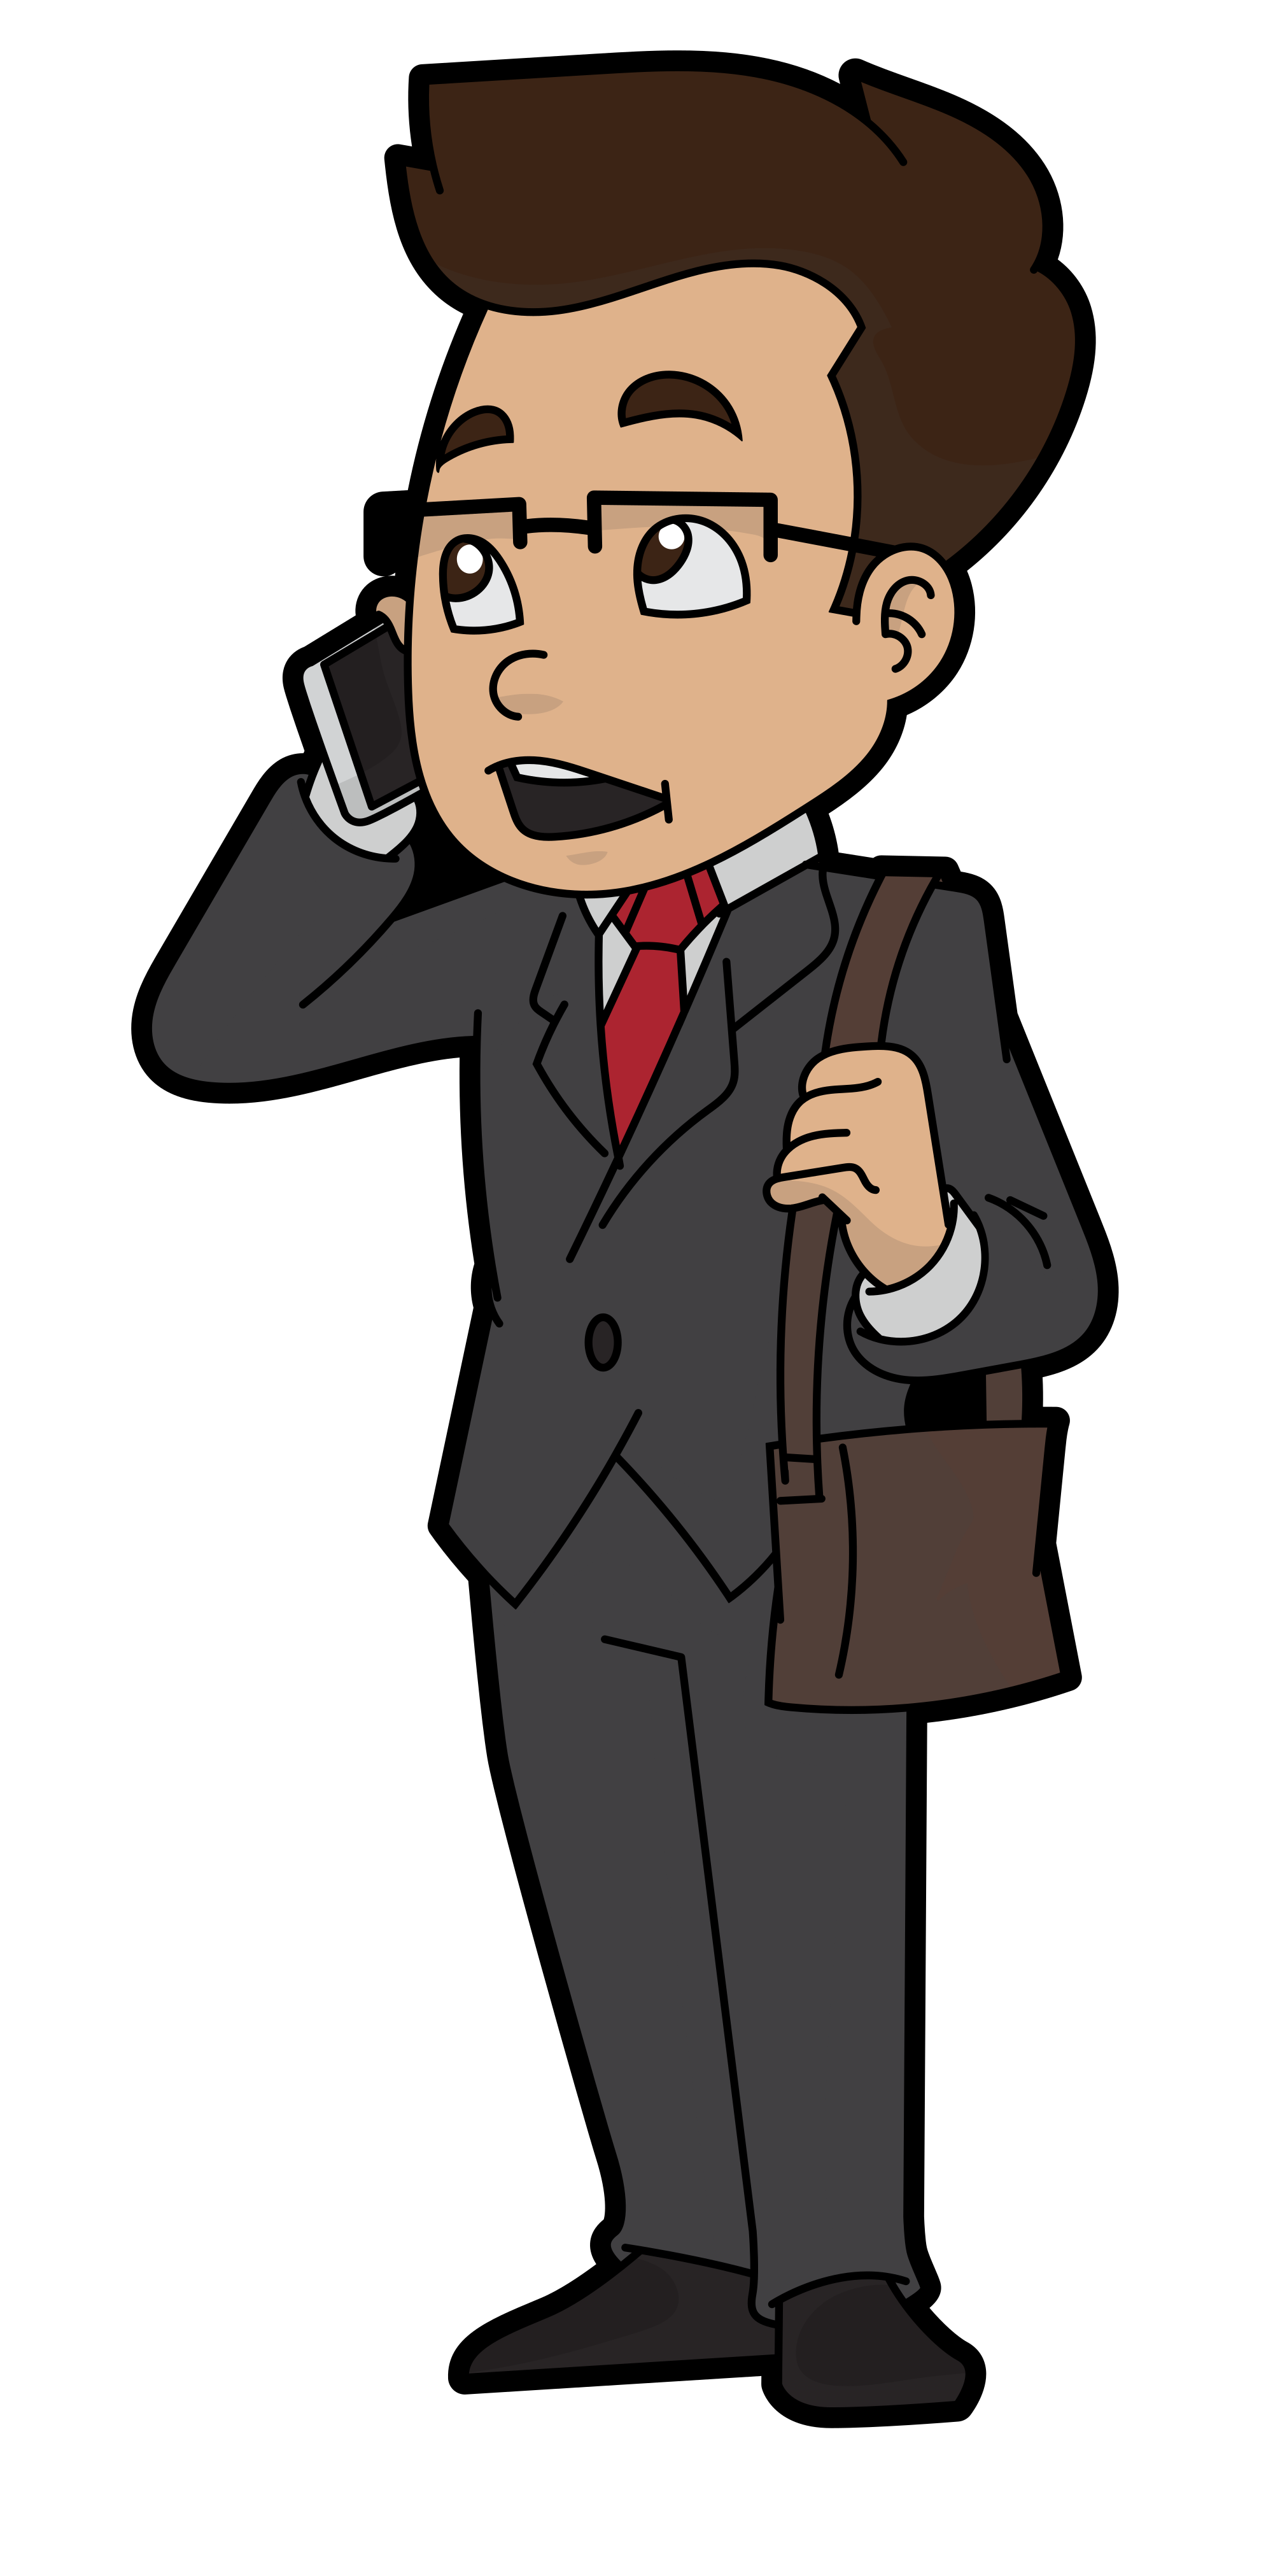 Cartoon businessman speaking png. File to a client